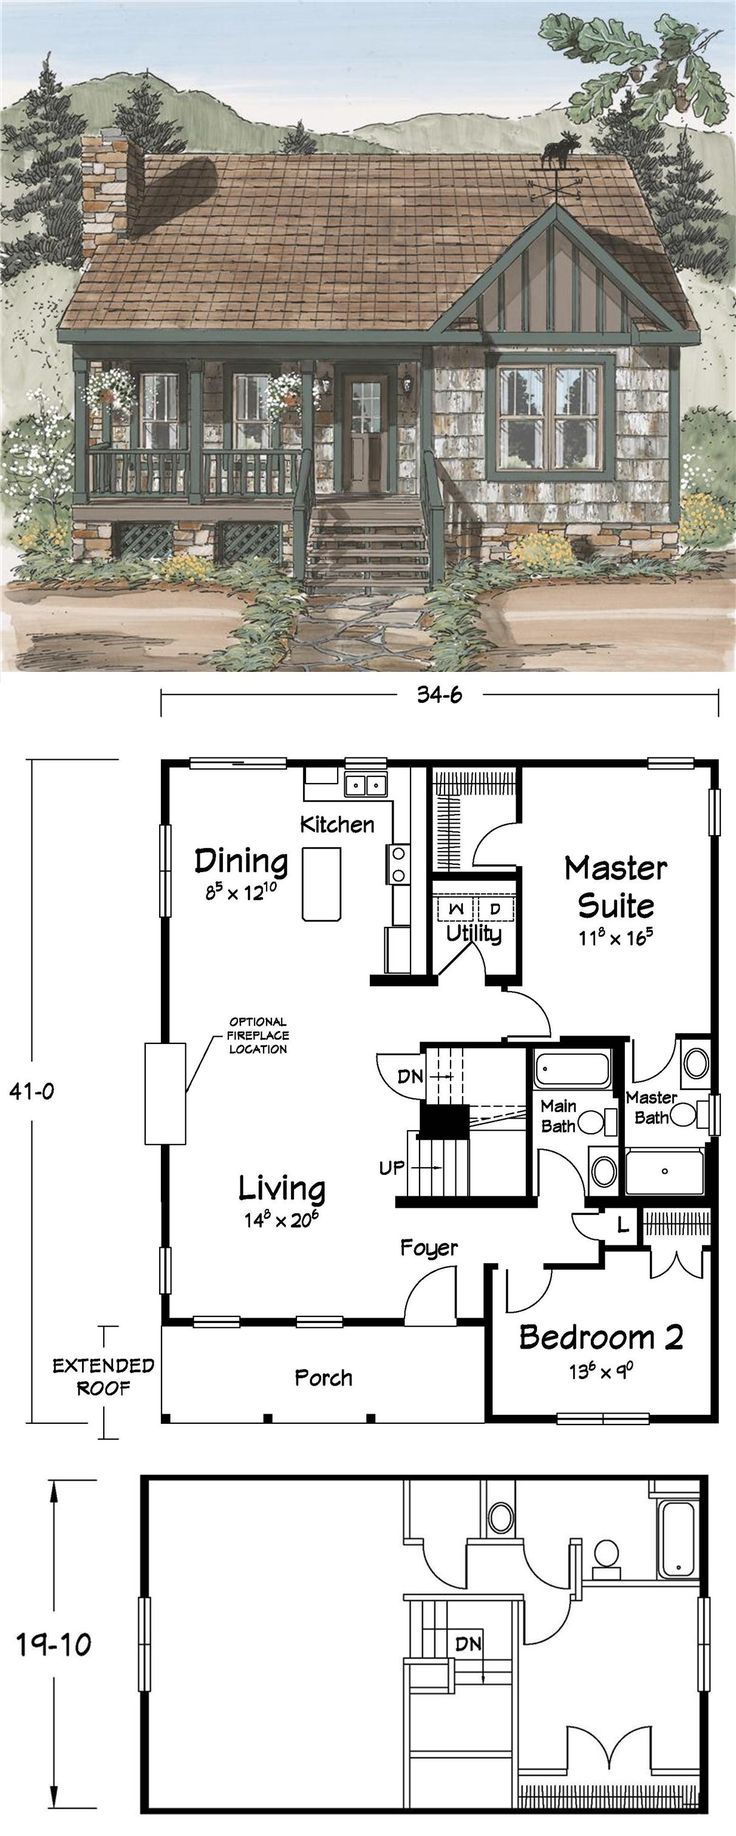 Cute floor plans tiny homes pinterest cabin small for Small house plans